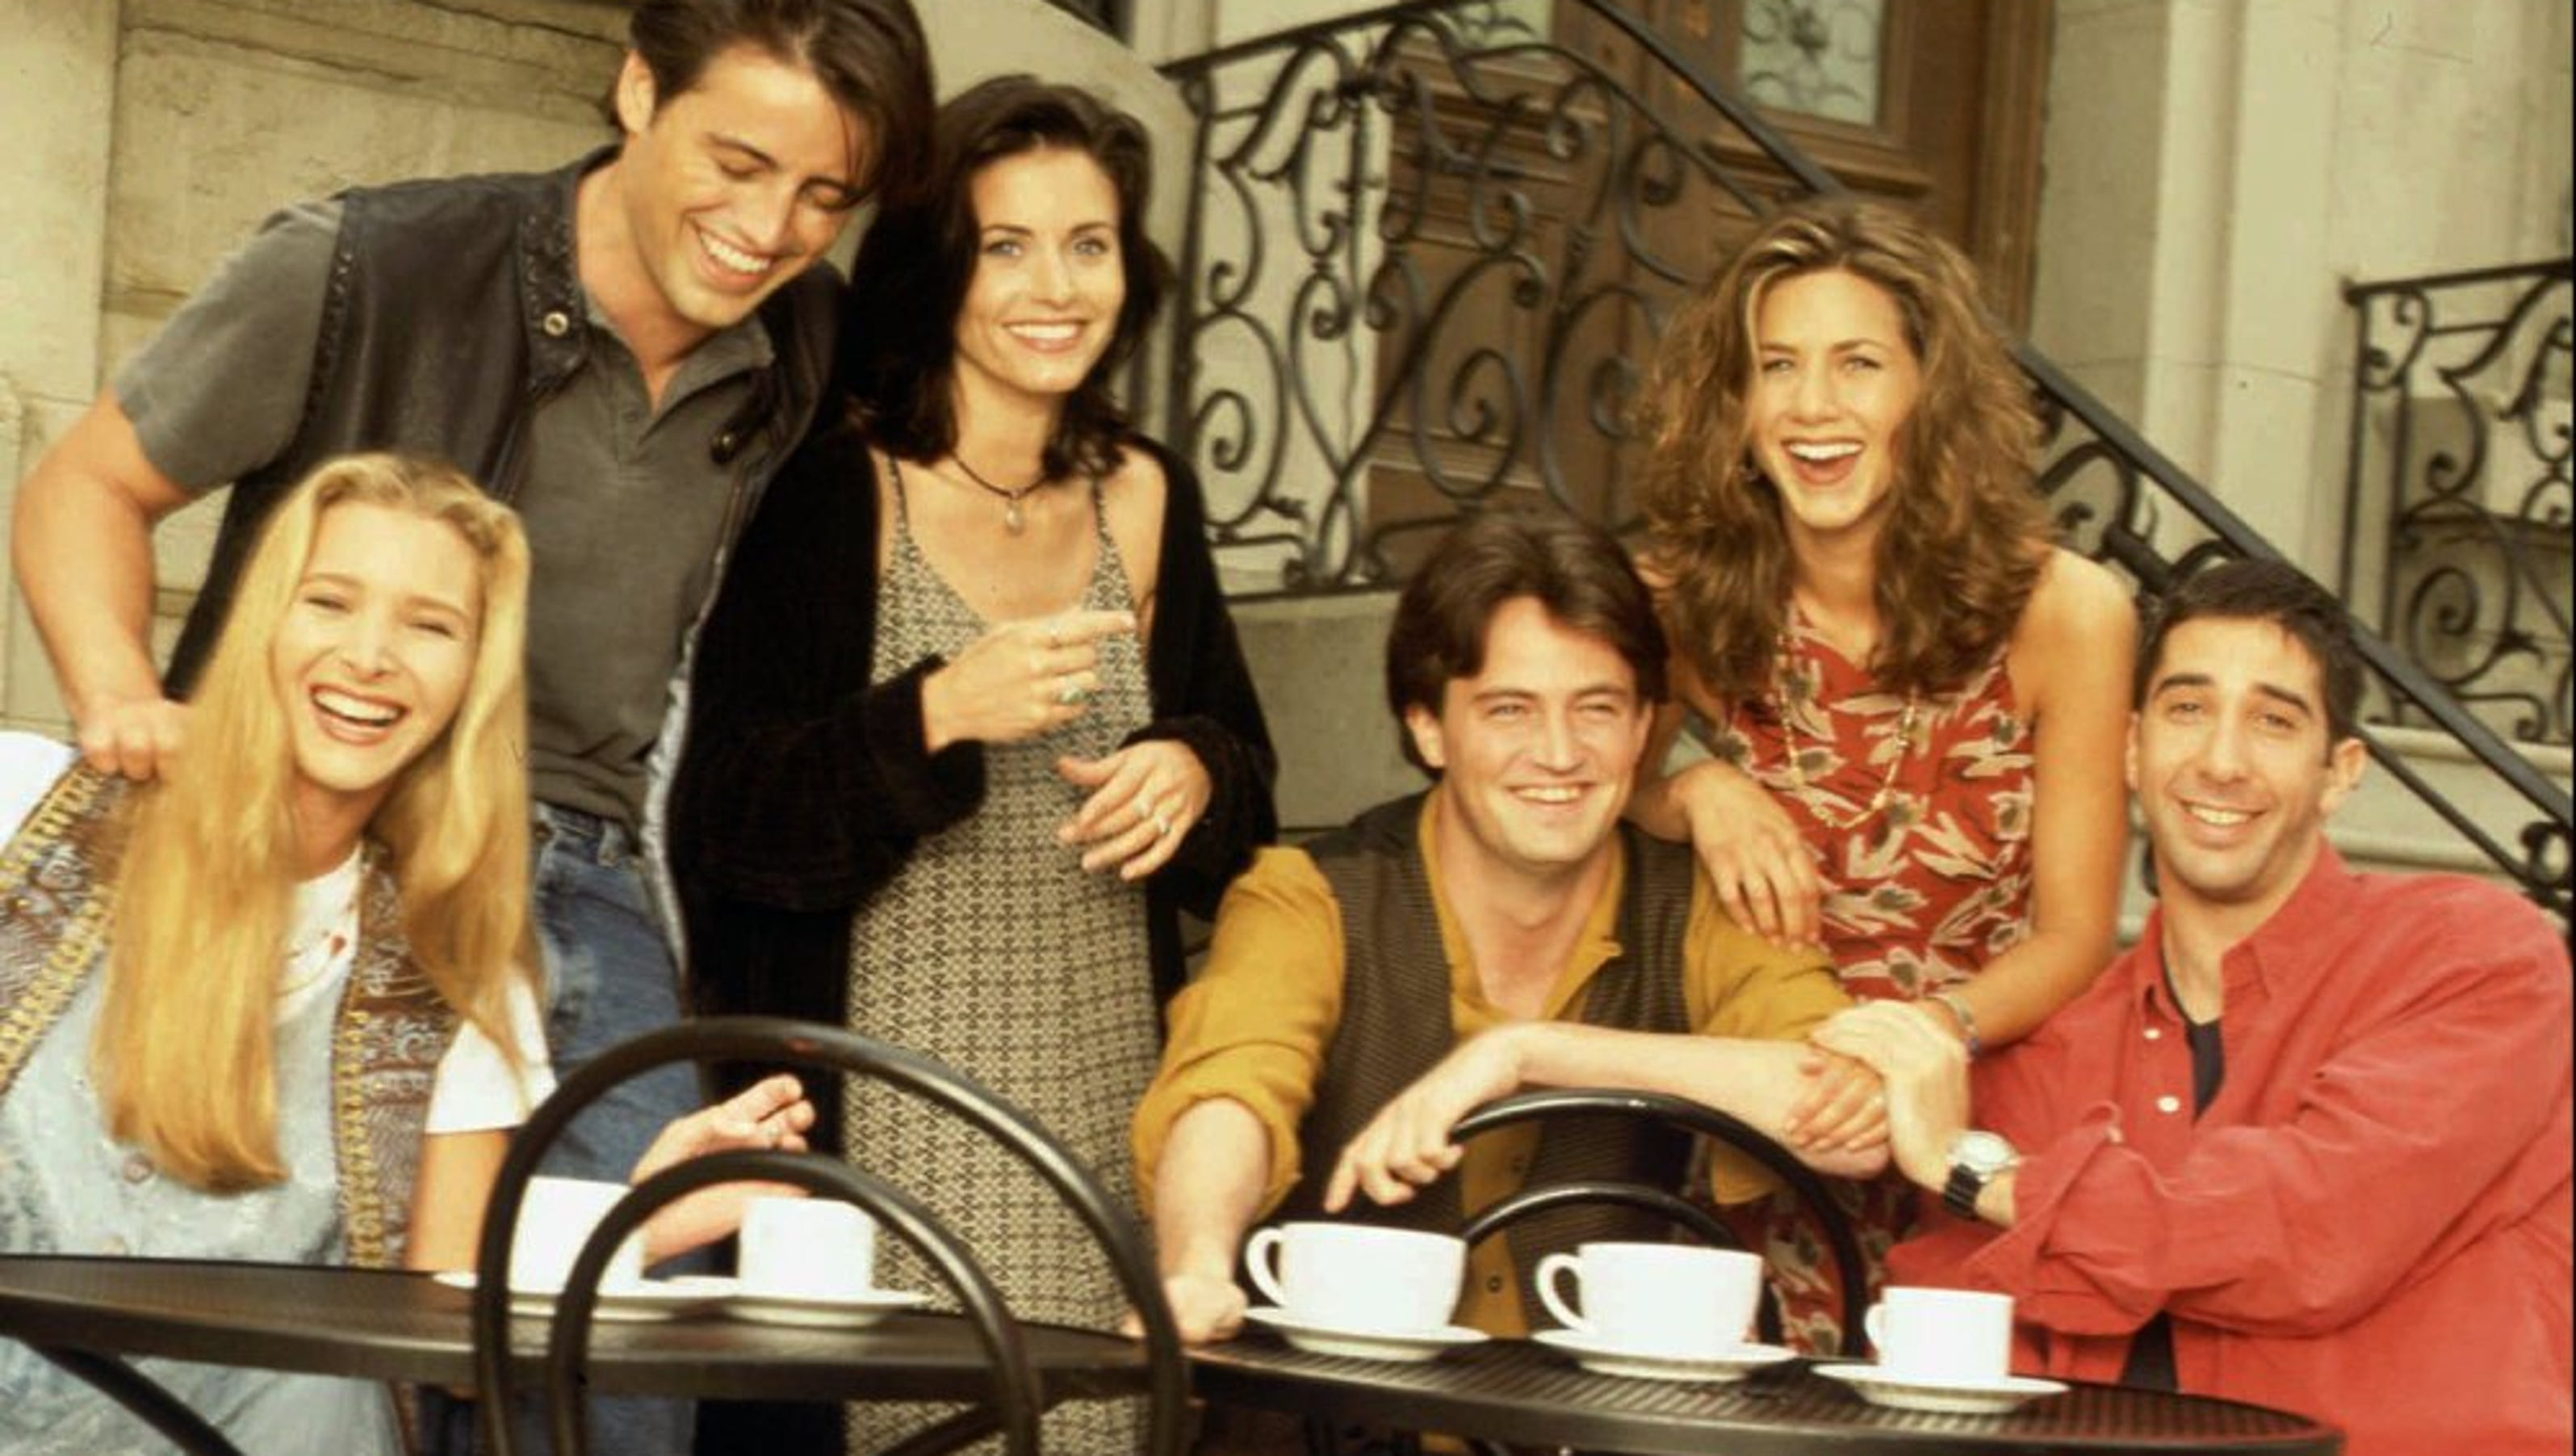 39 Friends 39 Is Coming To Netflix 5 Episodes To Watch The Moment It 39 S There